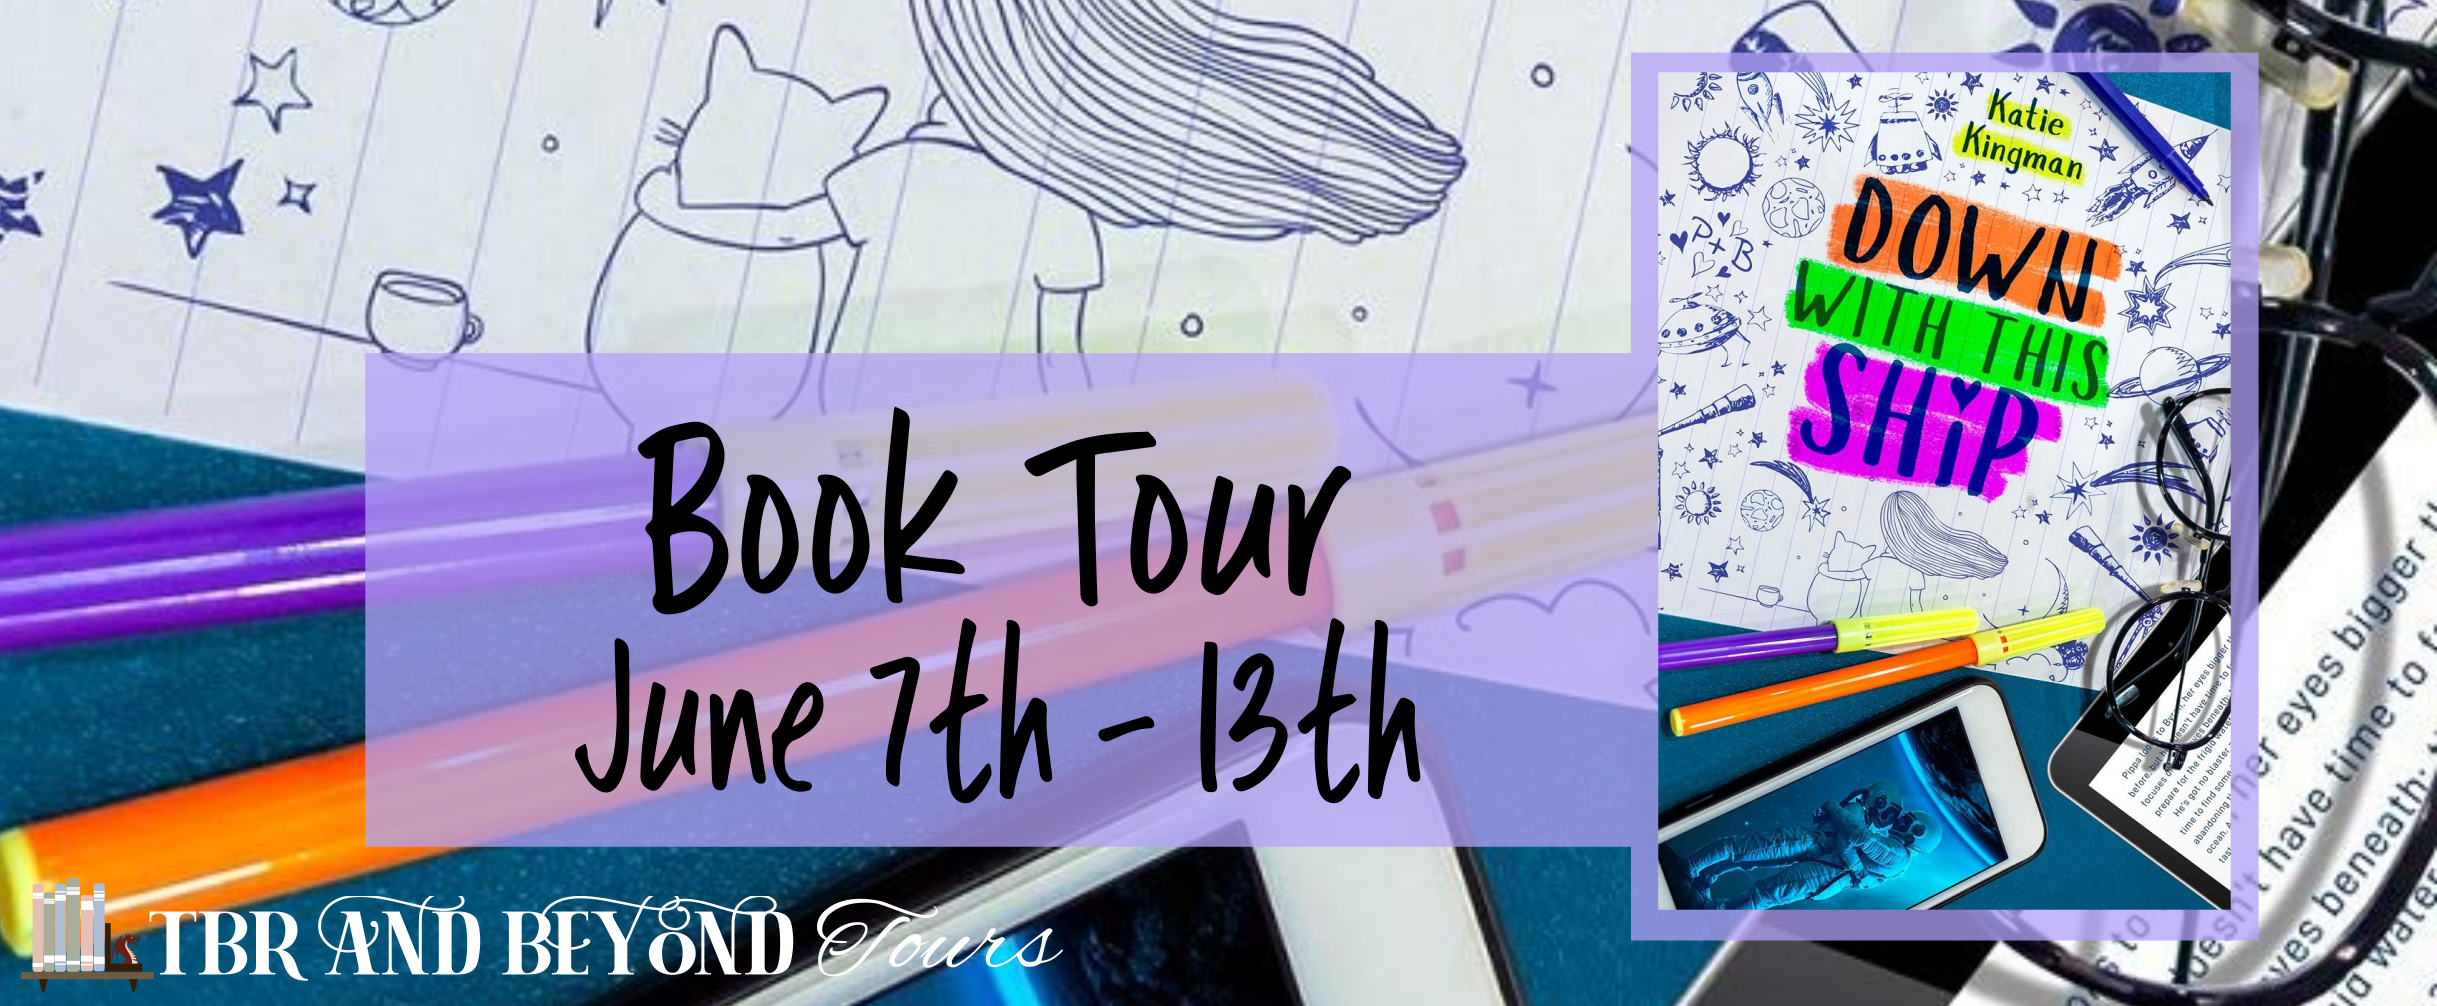 Blog Tour: Down With This Ship by Katie Kingman (Interview + Giveaway!)